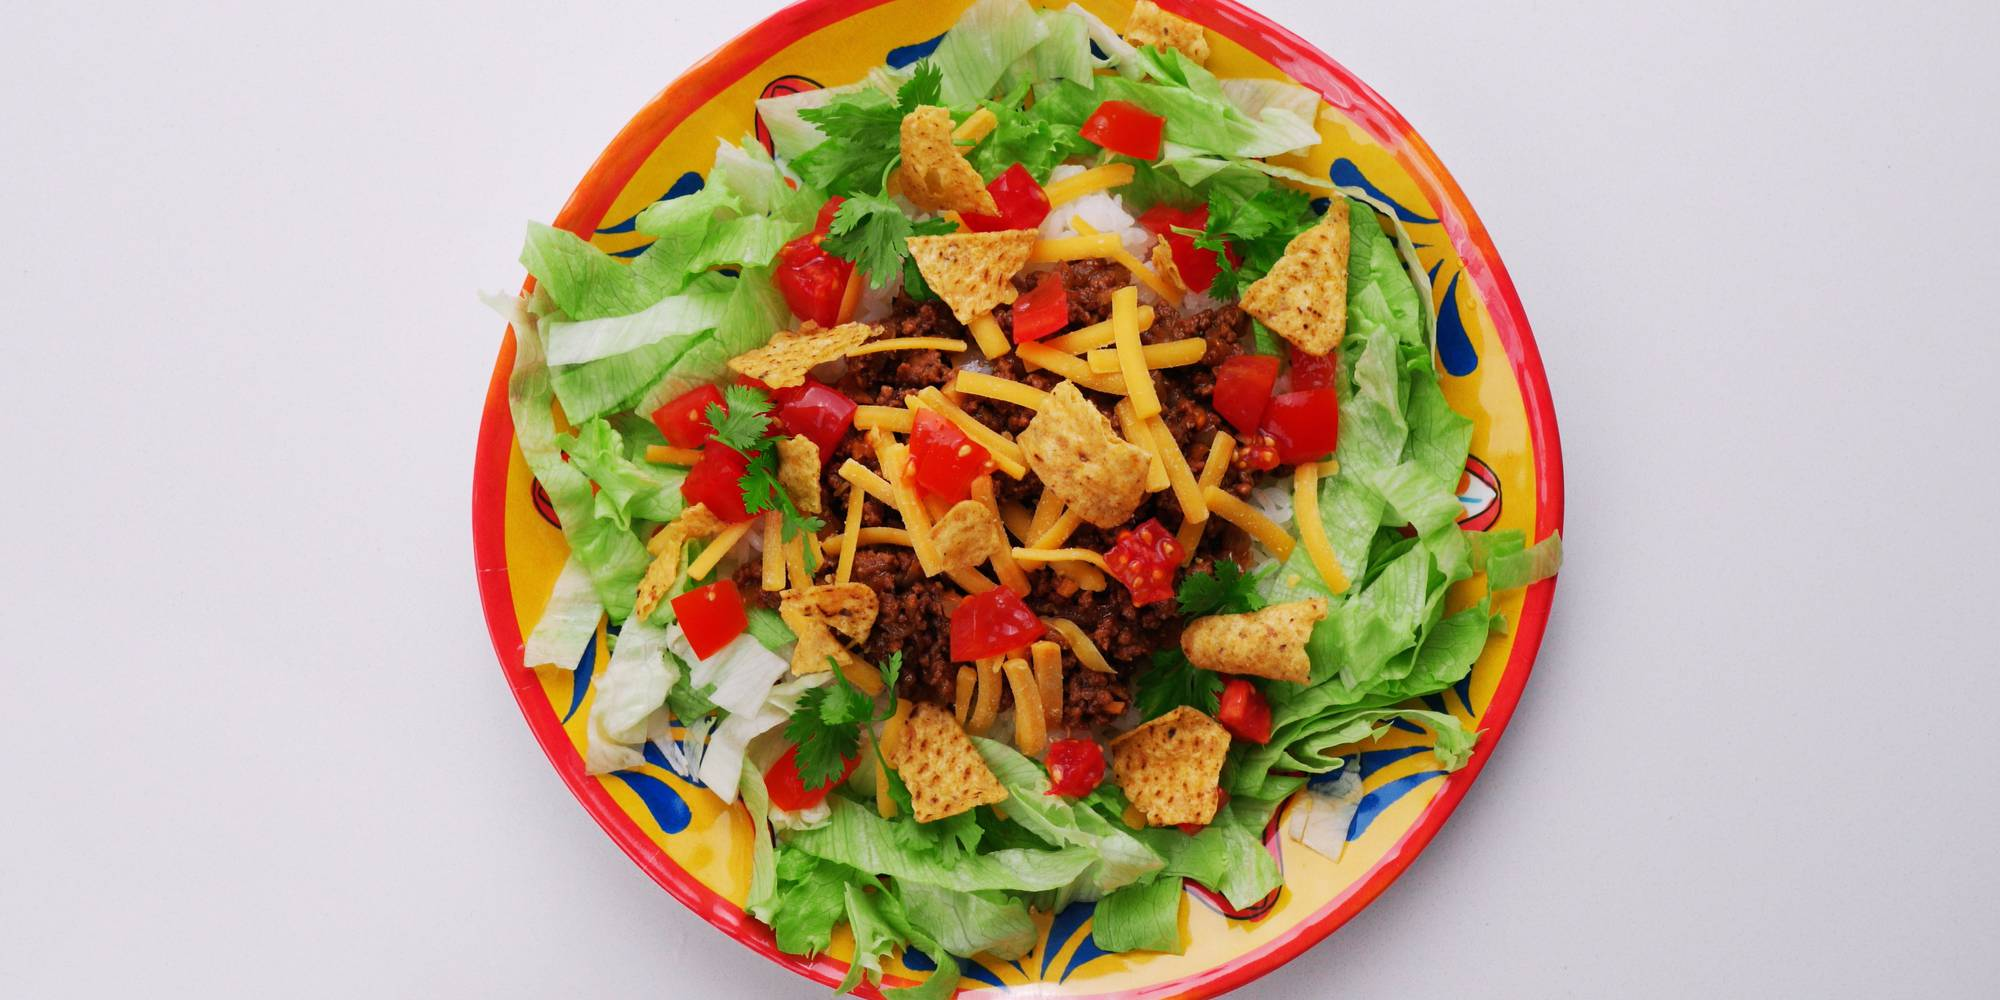 Overhead view of a plate of Okinawa-style taco rice.